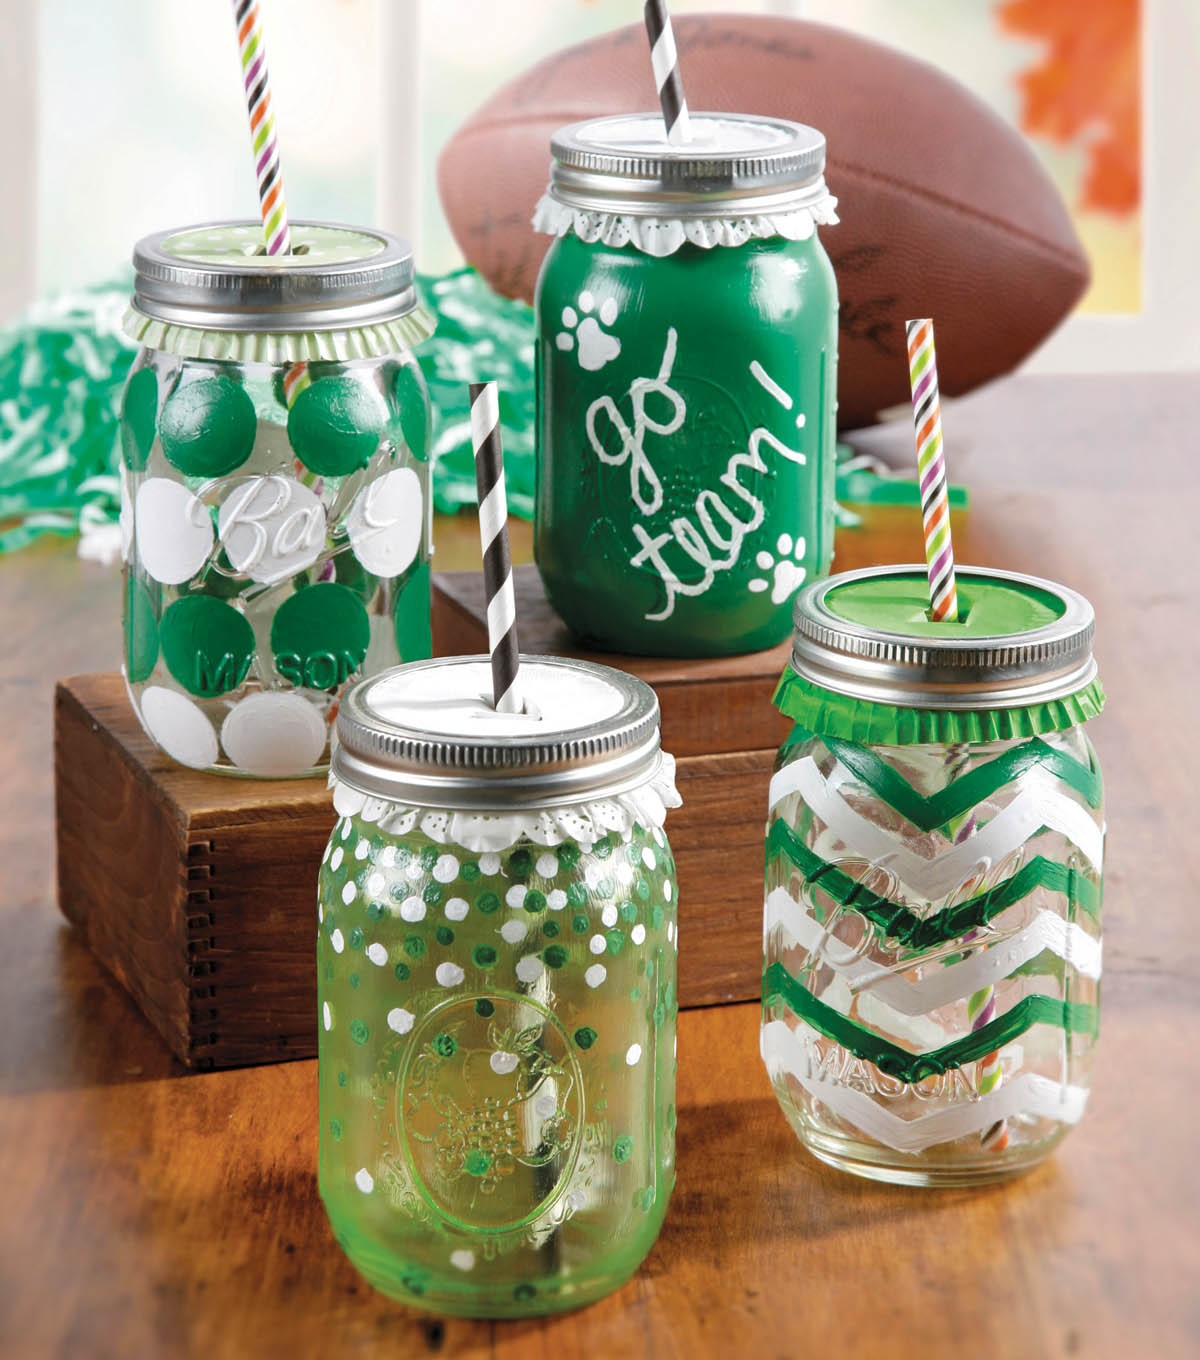 Go Team & Shapes Mason Jars